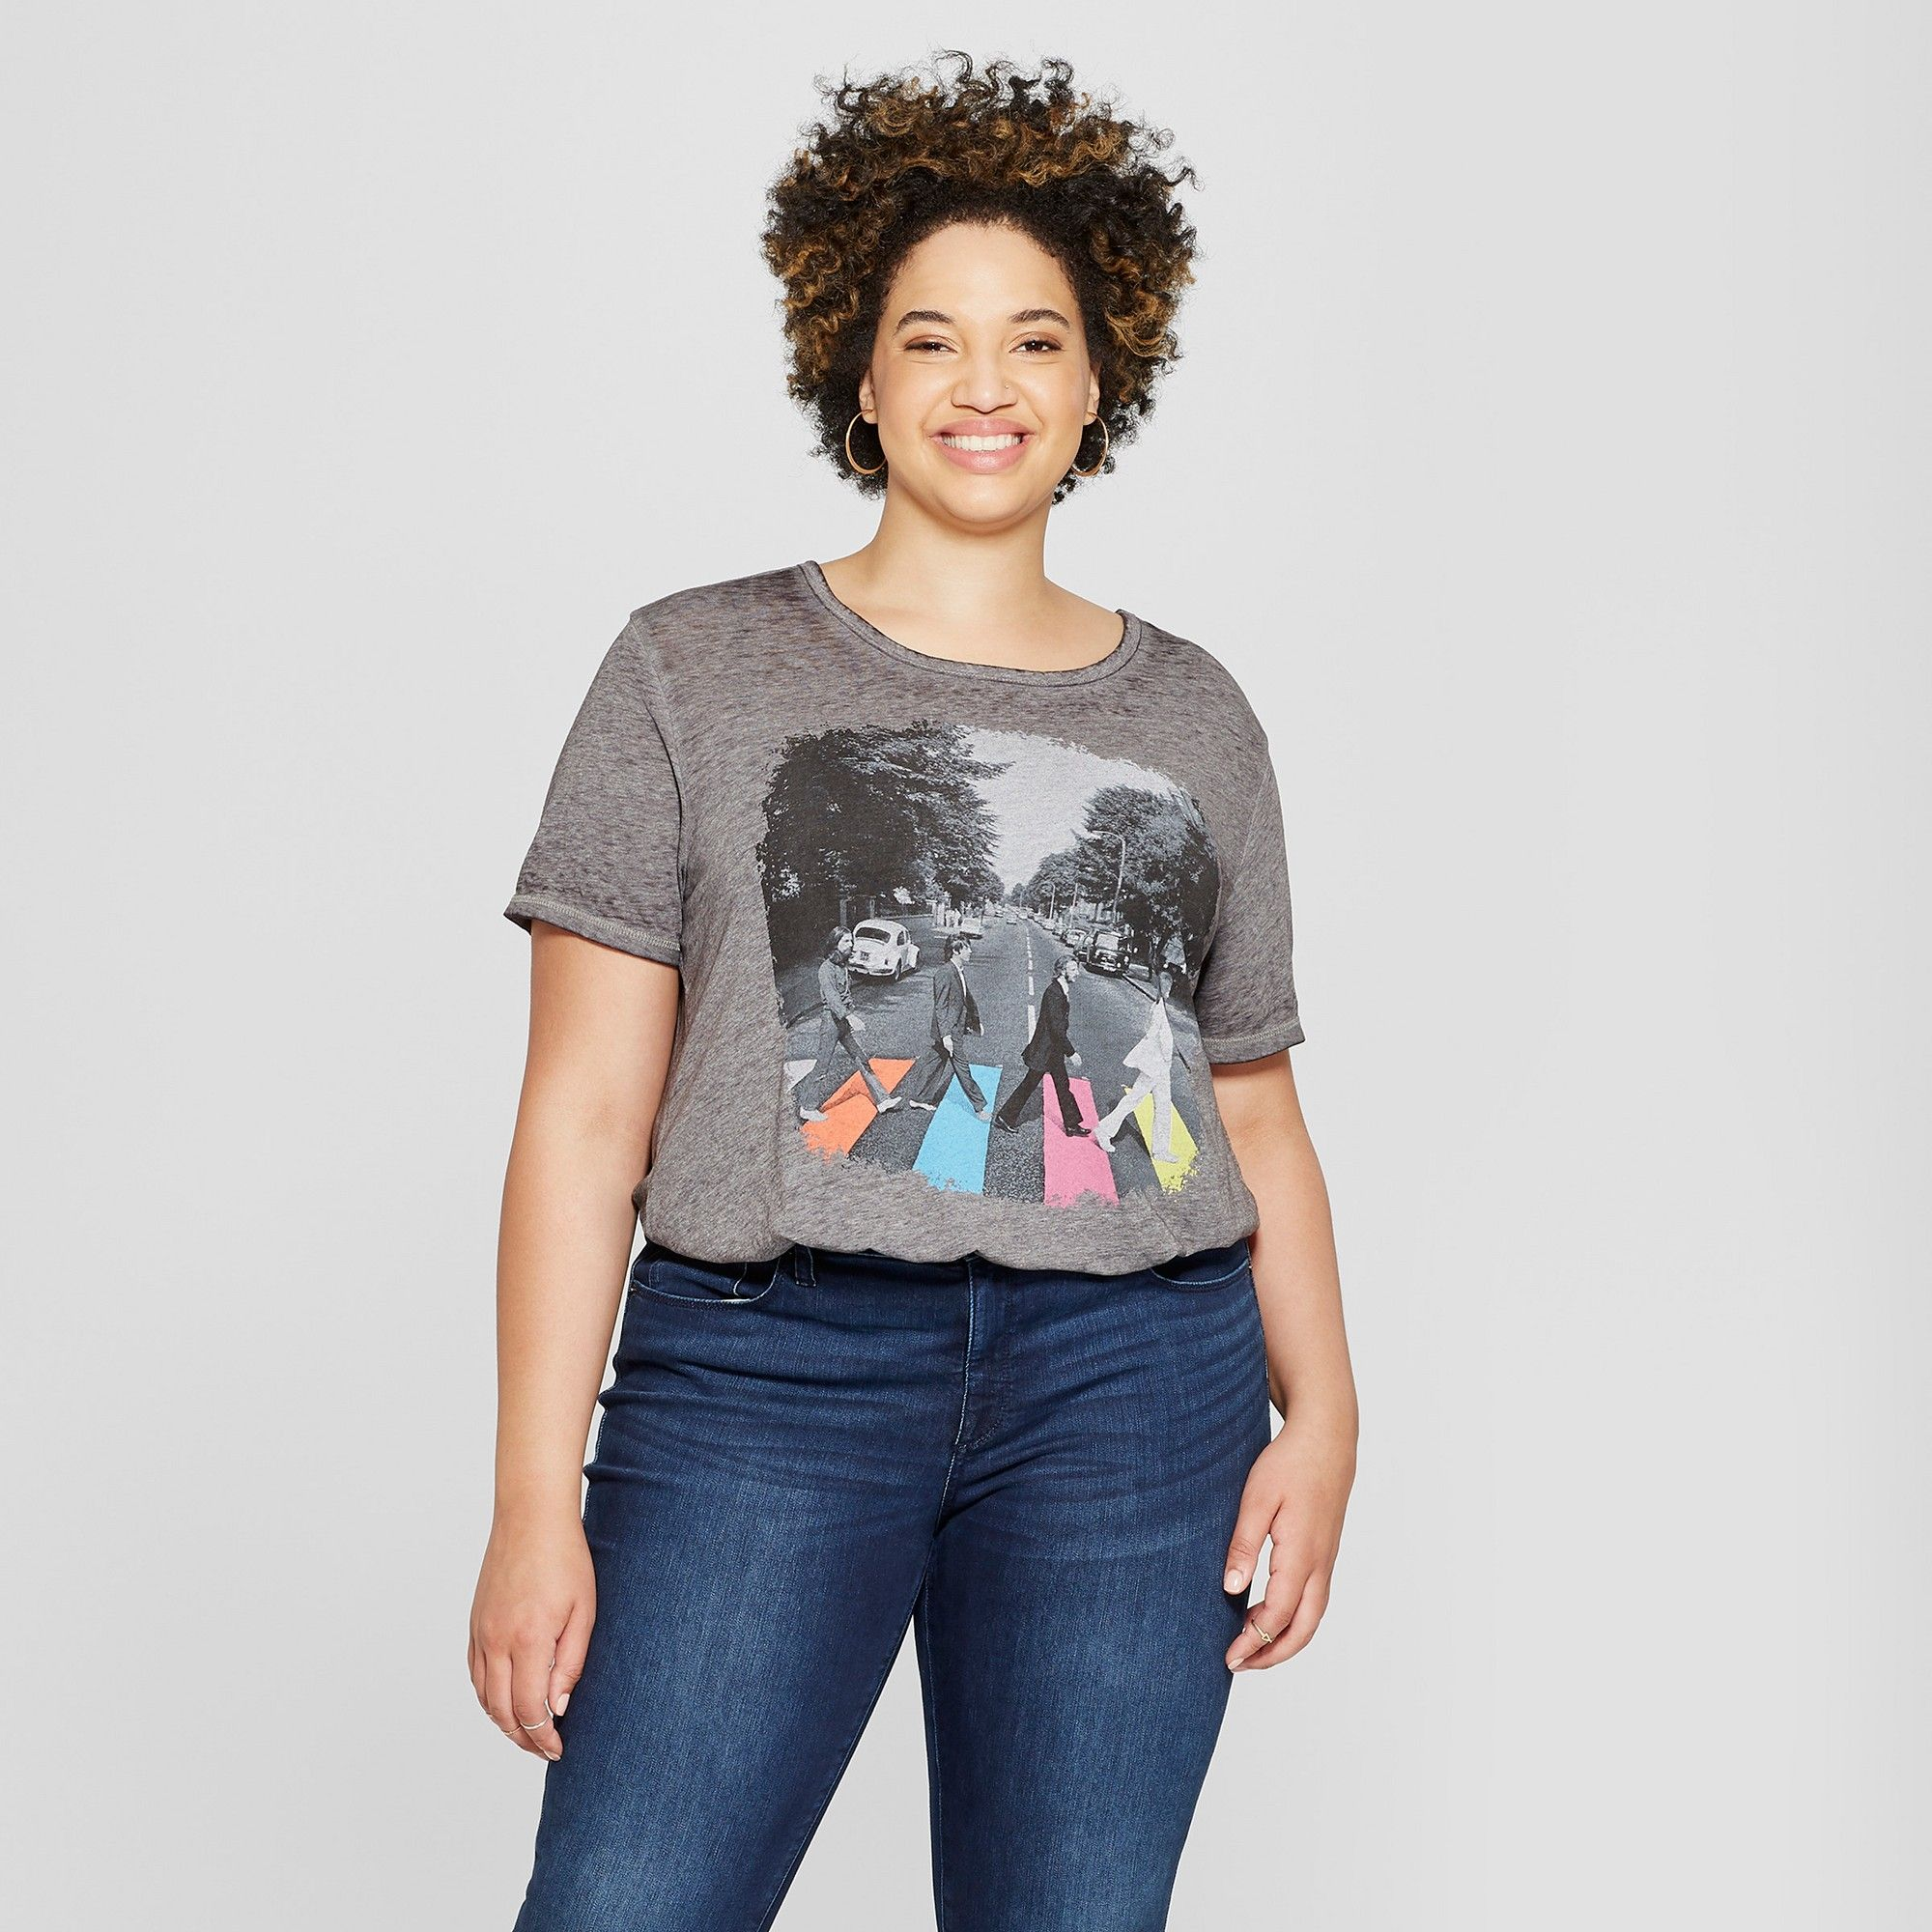 c5be2bd7658 Women s The Beatles Plus Size Abbey Road Short Sleeve Graphic T-Shirt ( Juniors ) Charcoal Gray 1X